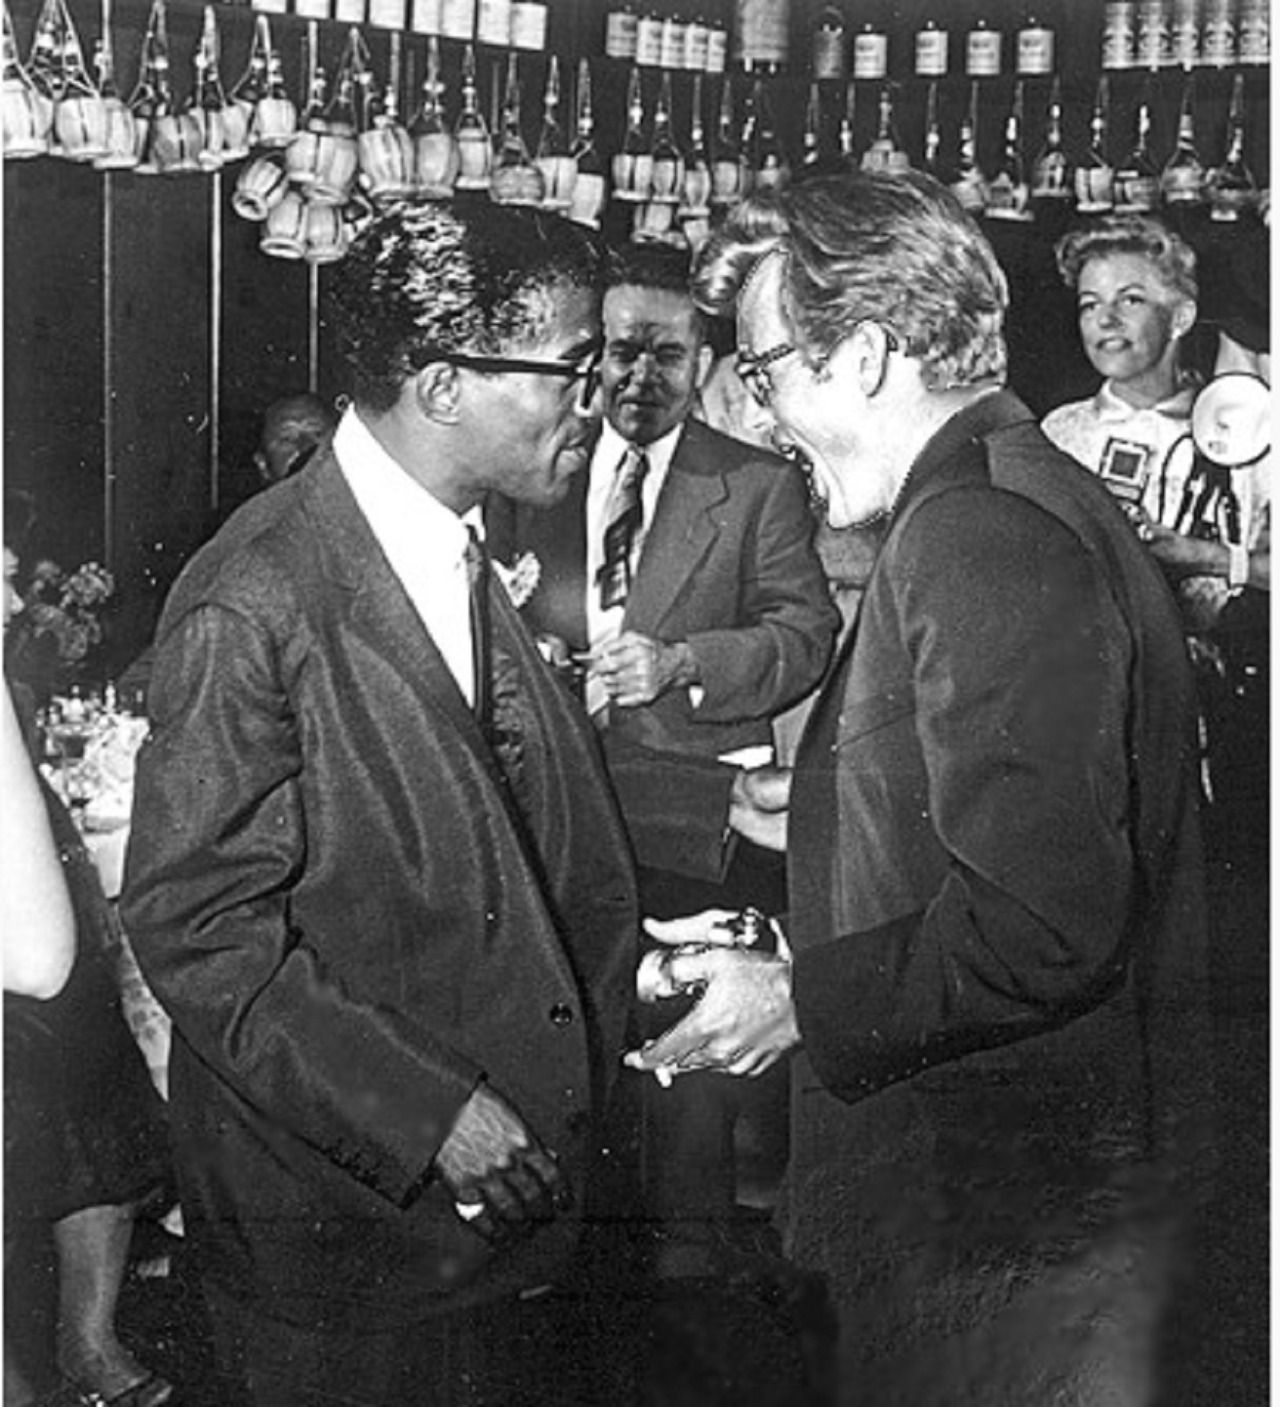 james dean and sammy davis jr pinterest sammy davis jr james dean and dean. Black Bedroom Furniture Sets. Home Design Ideas